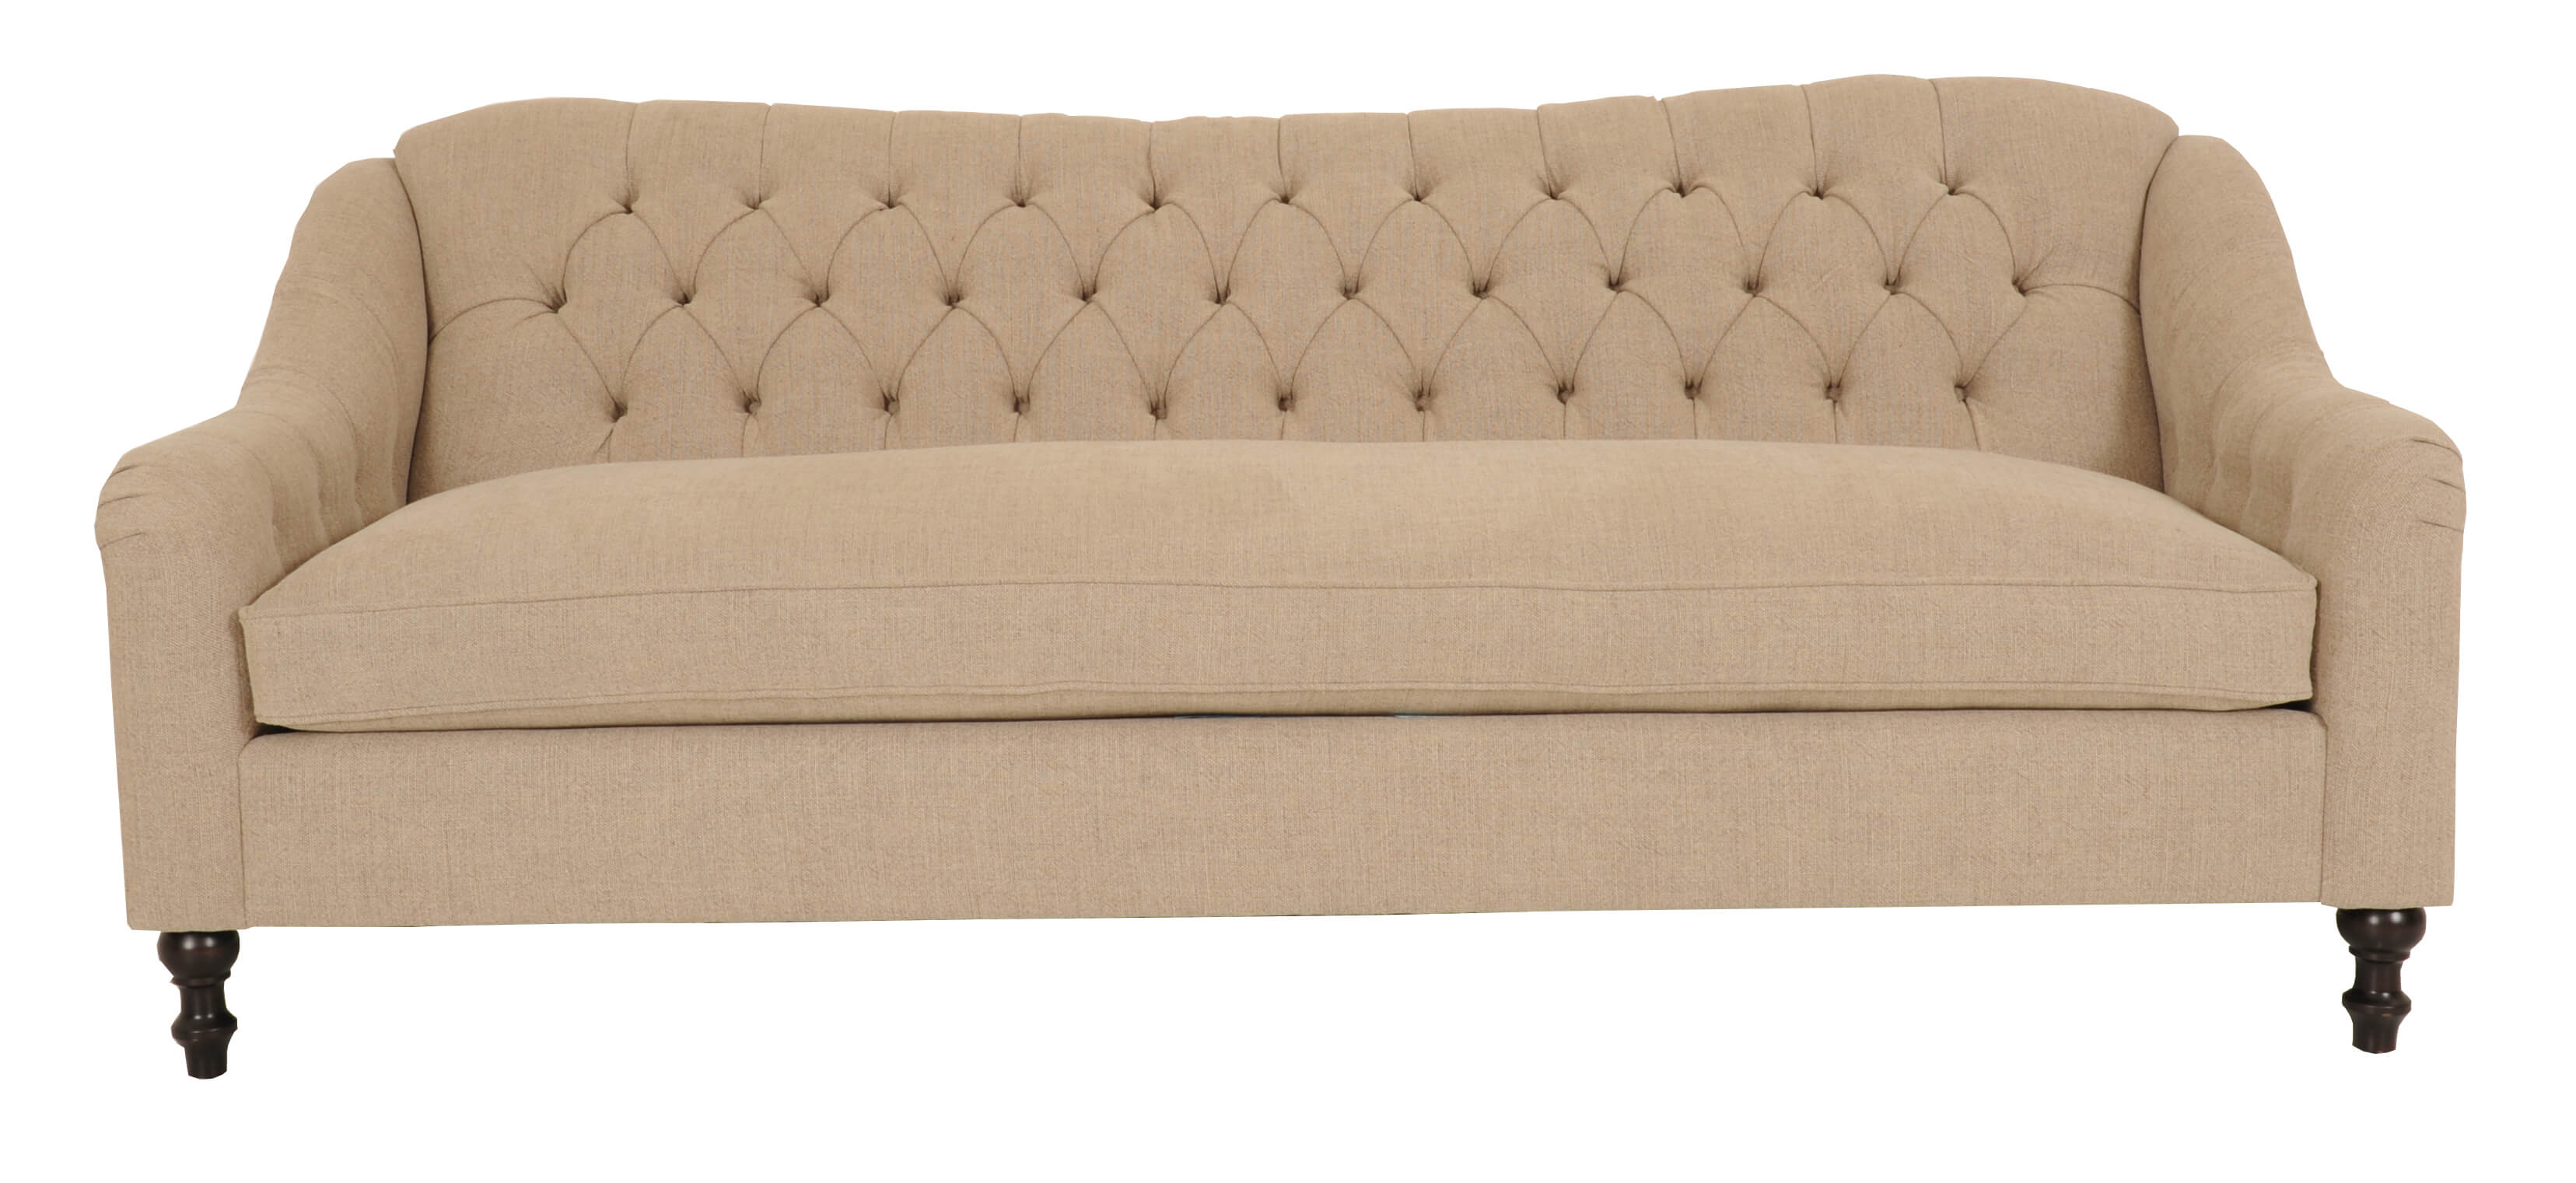 sofas by design des moines berkline reclining sofa parts style new classic